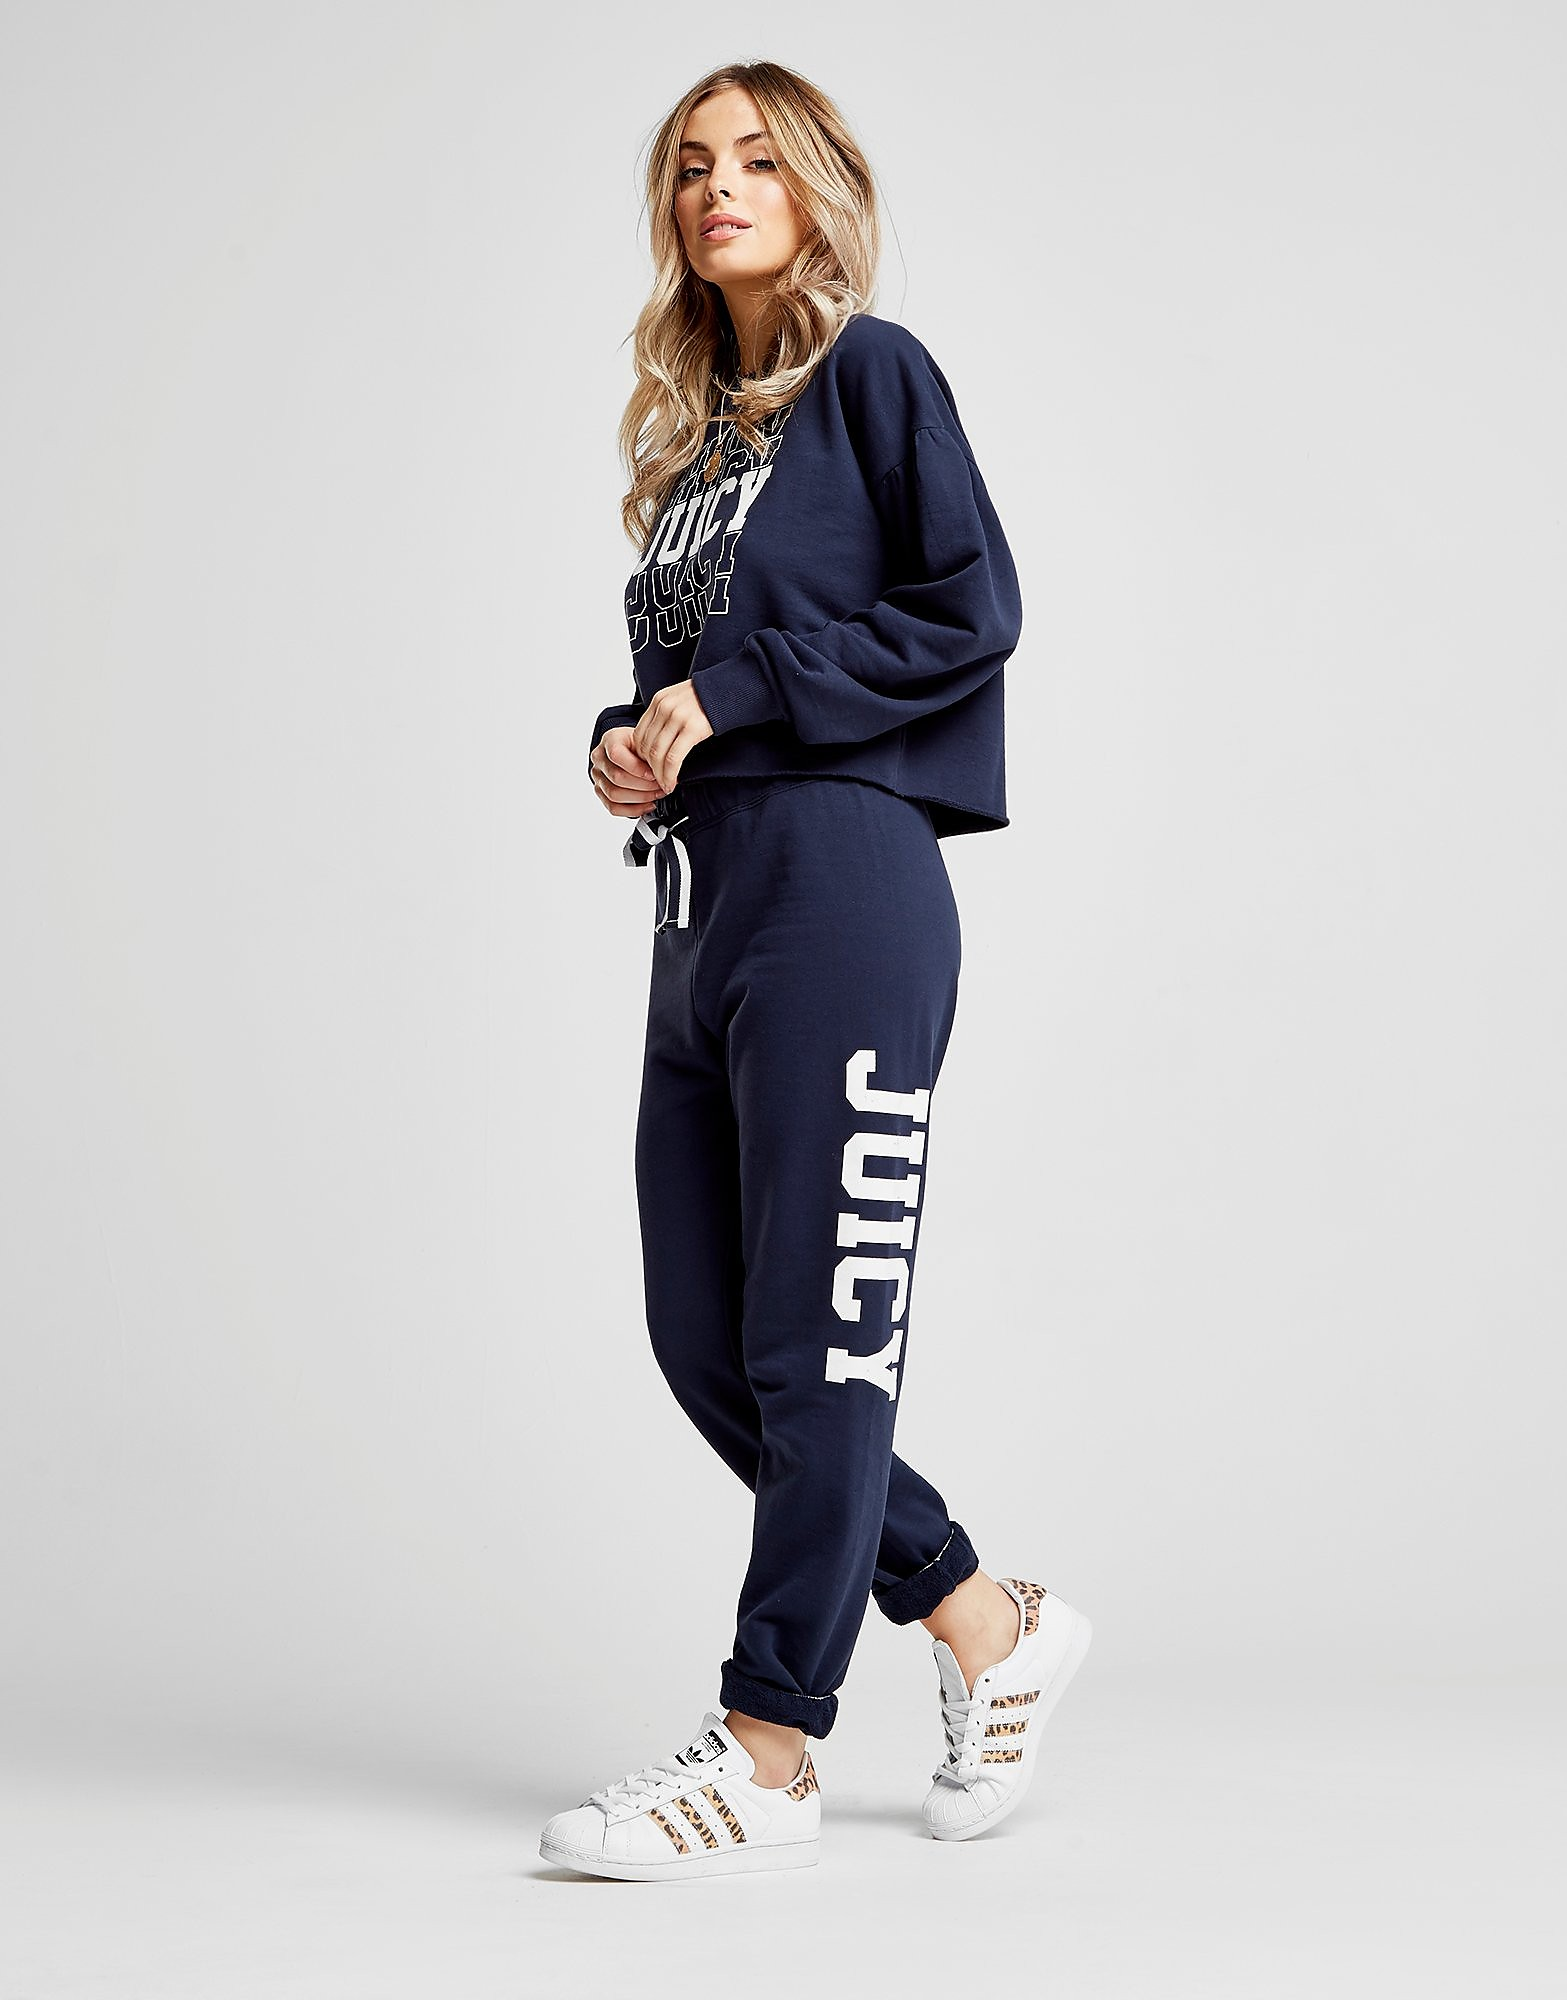 Juicy by Juicy Couture Logo Pants